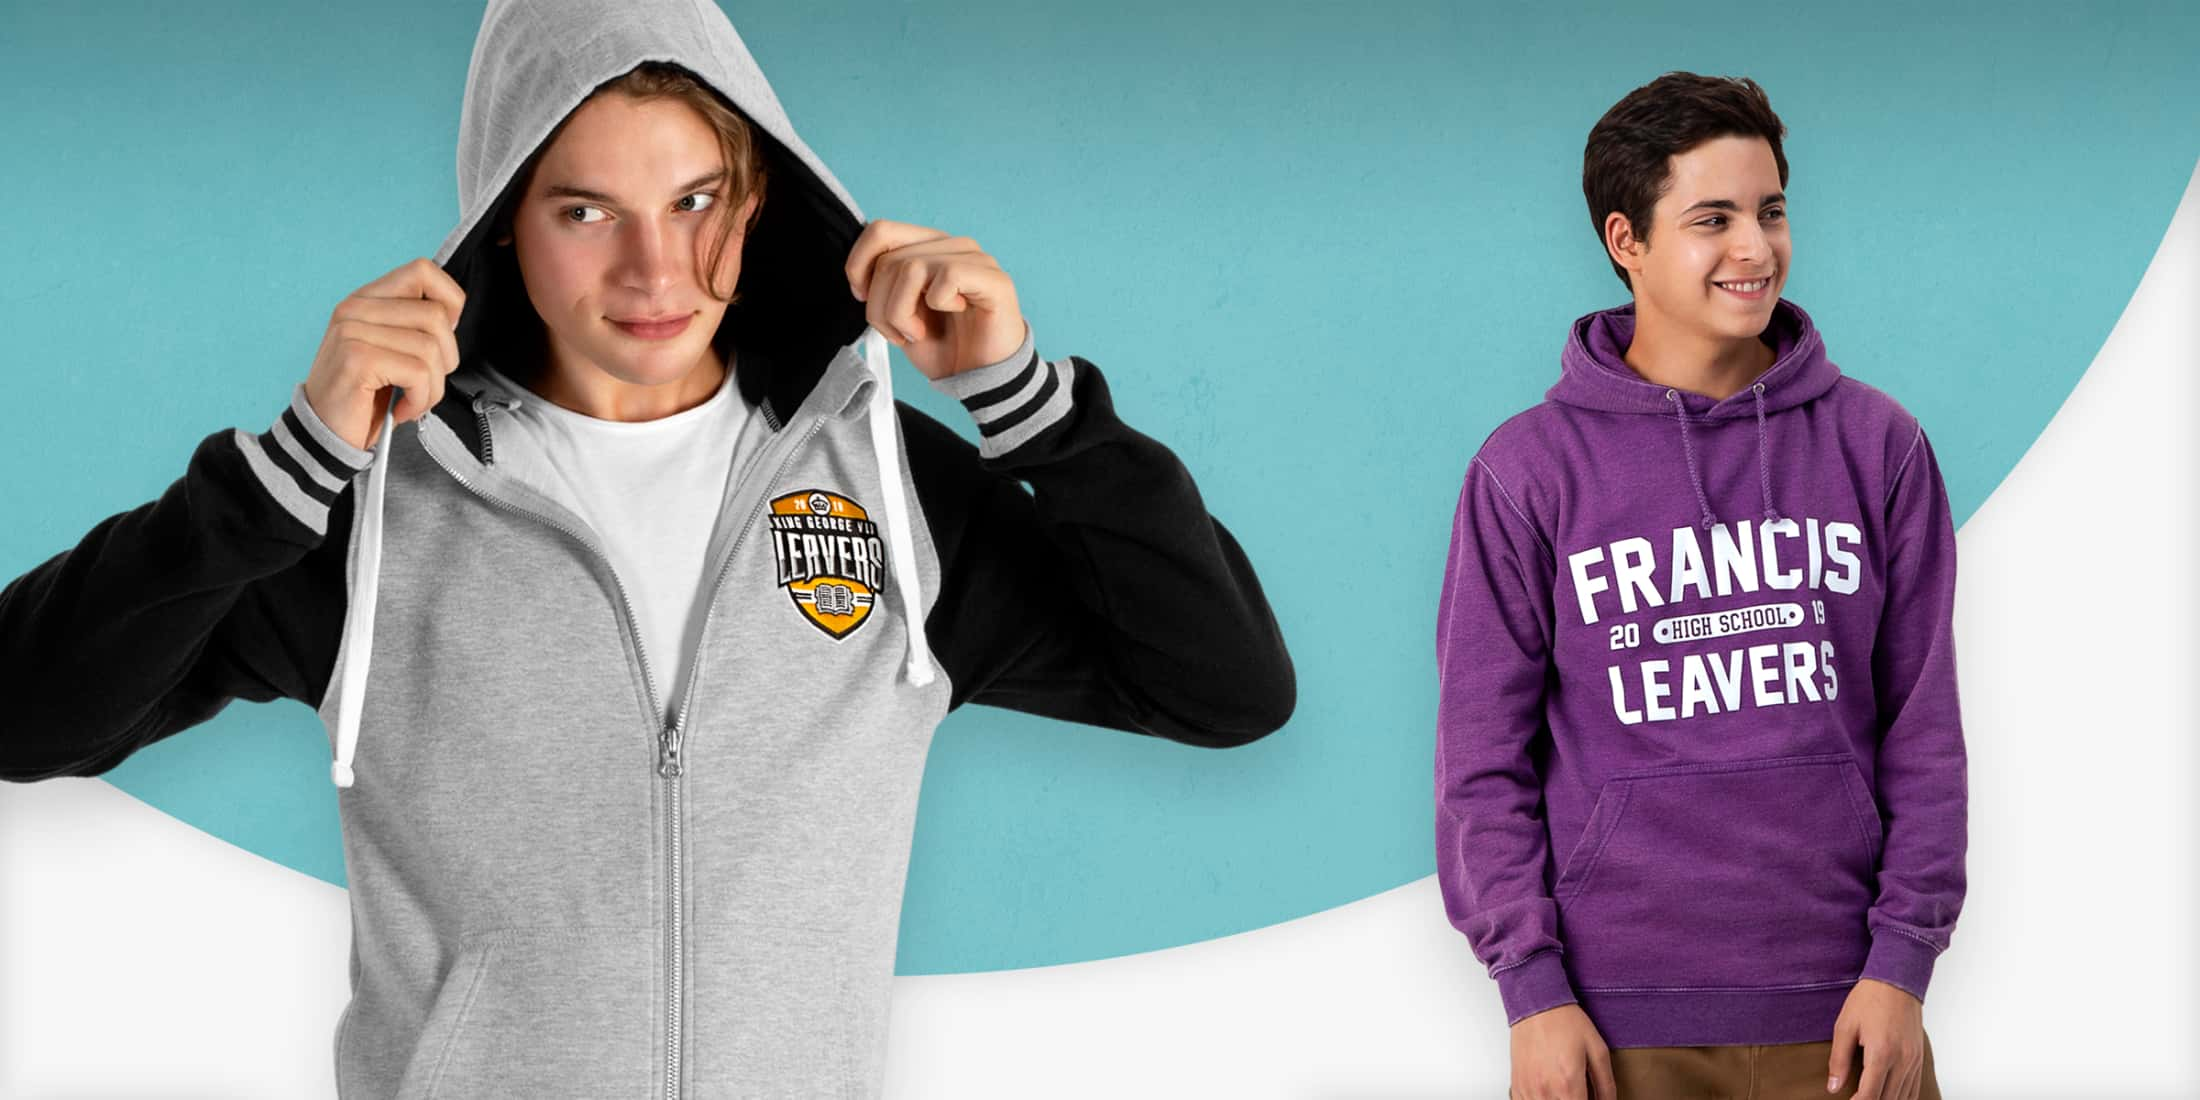 Leavers hoodies colours and styles